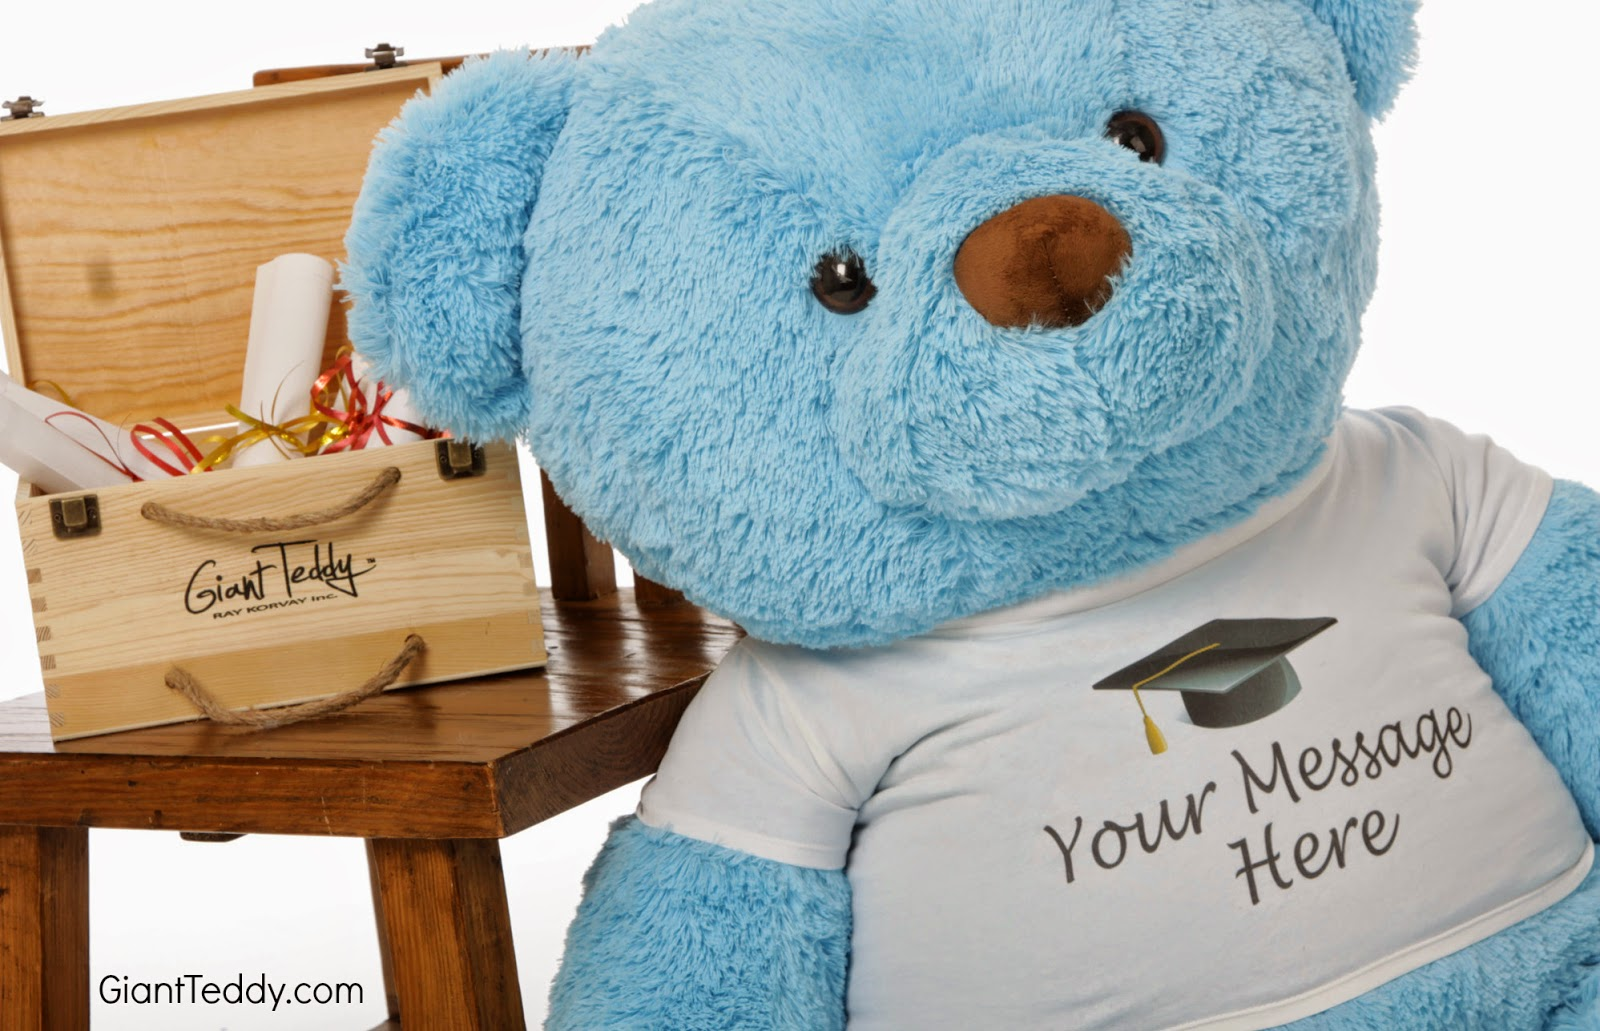 We Have Personalized Graduation Teddy Bears Who Will Give Your Own Special  3 5 Word Message To Your Special Graduate.